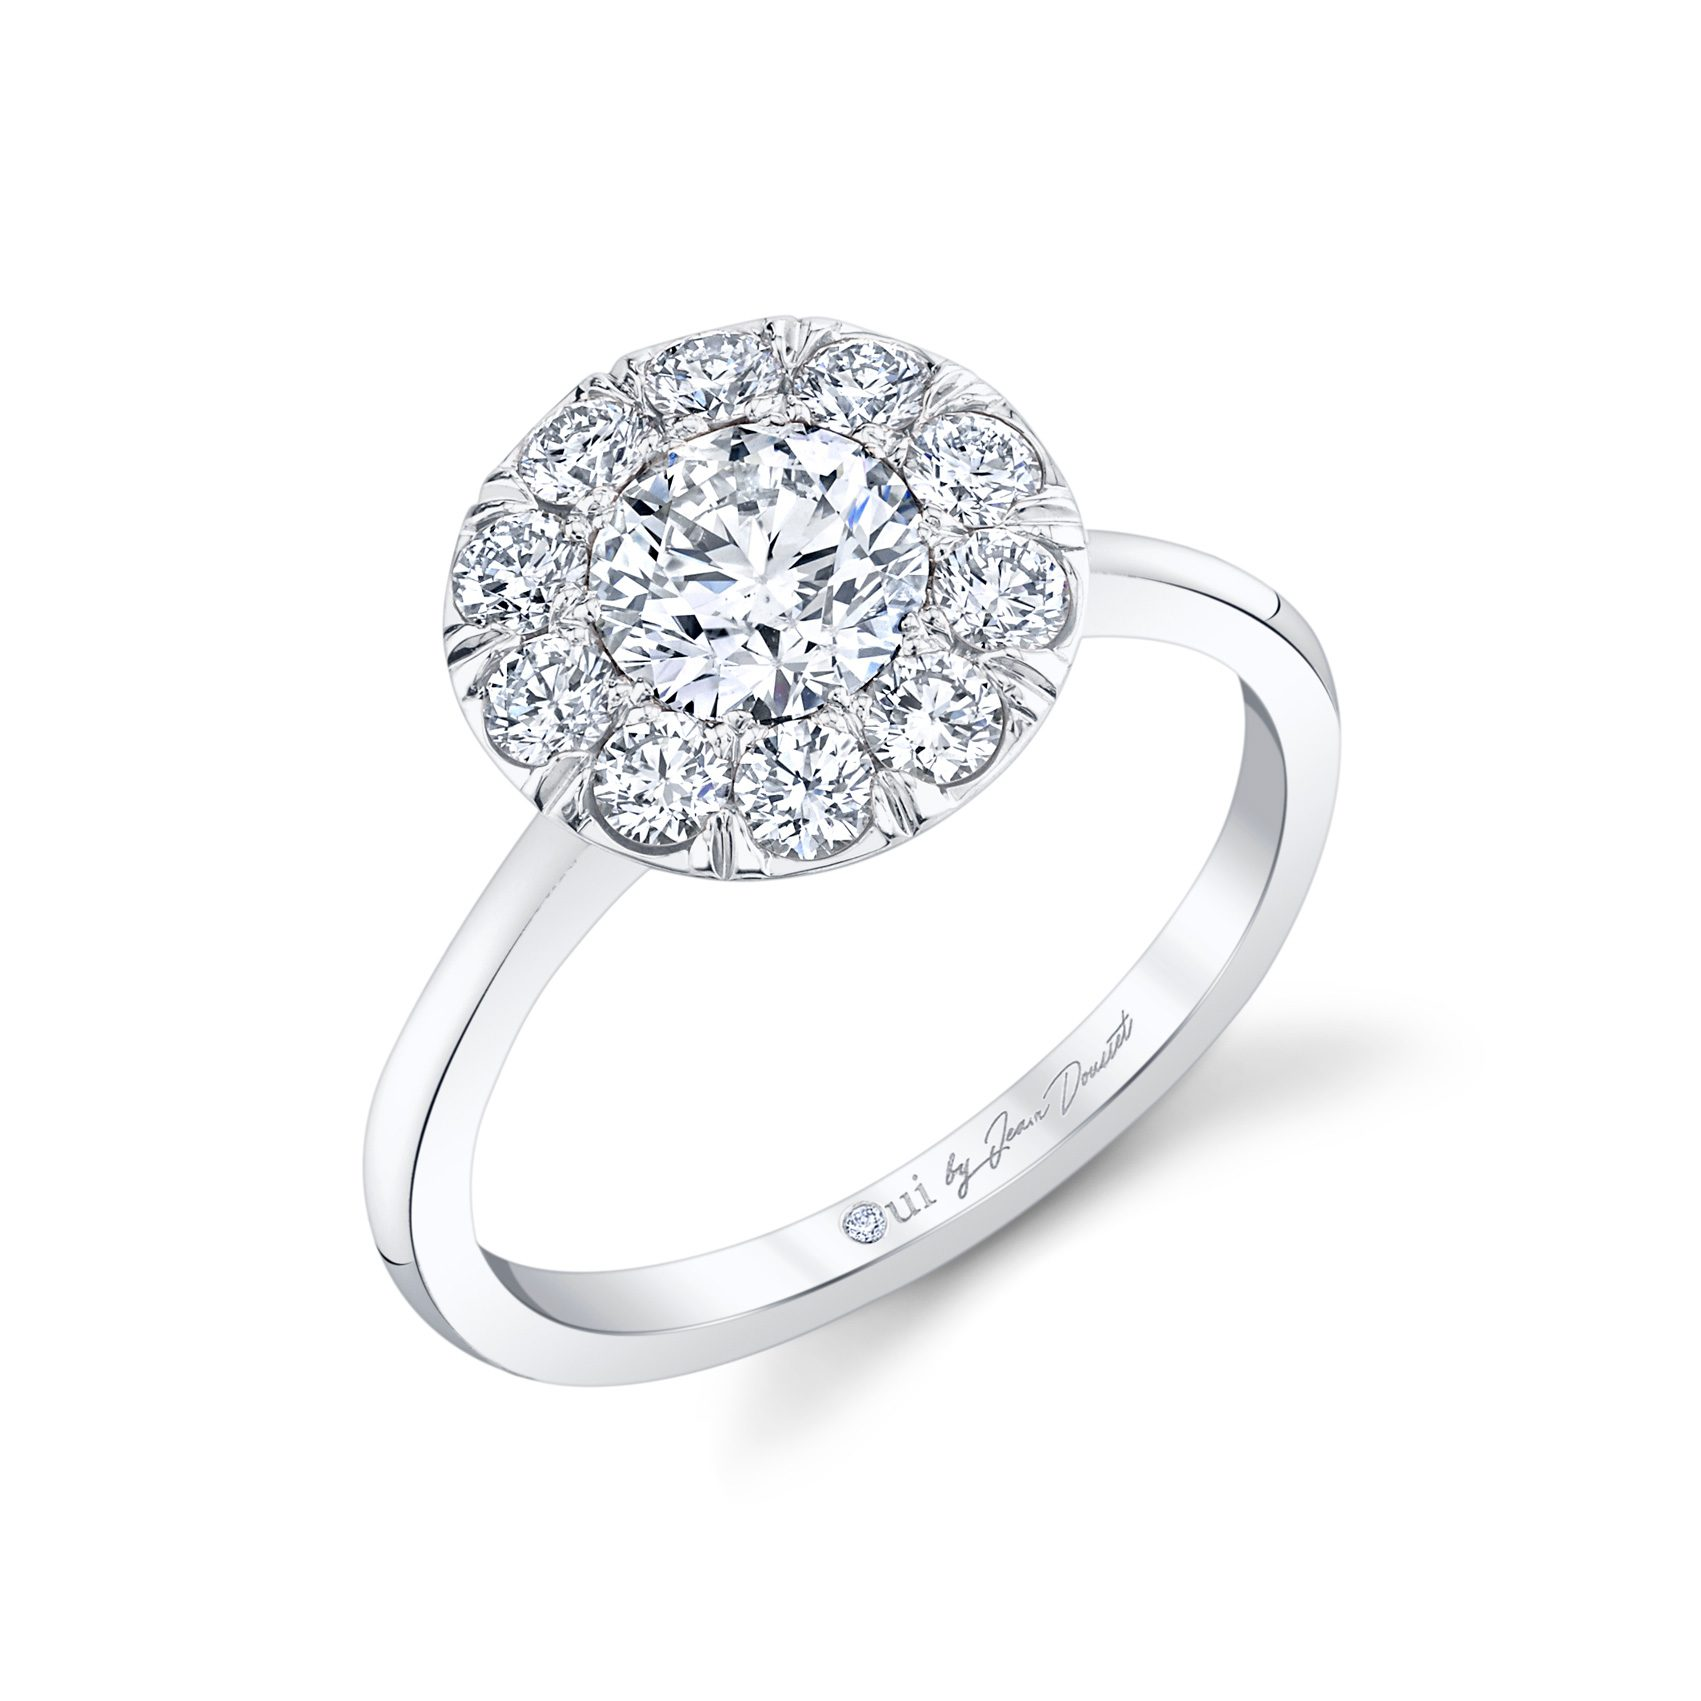 Colette Floating Round Brilliant Seamless Solitaire® Engagement Ring with a sold band in 18k White Gold Profile View by Oui by Jean Dousset